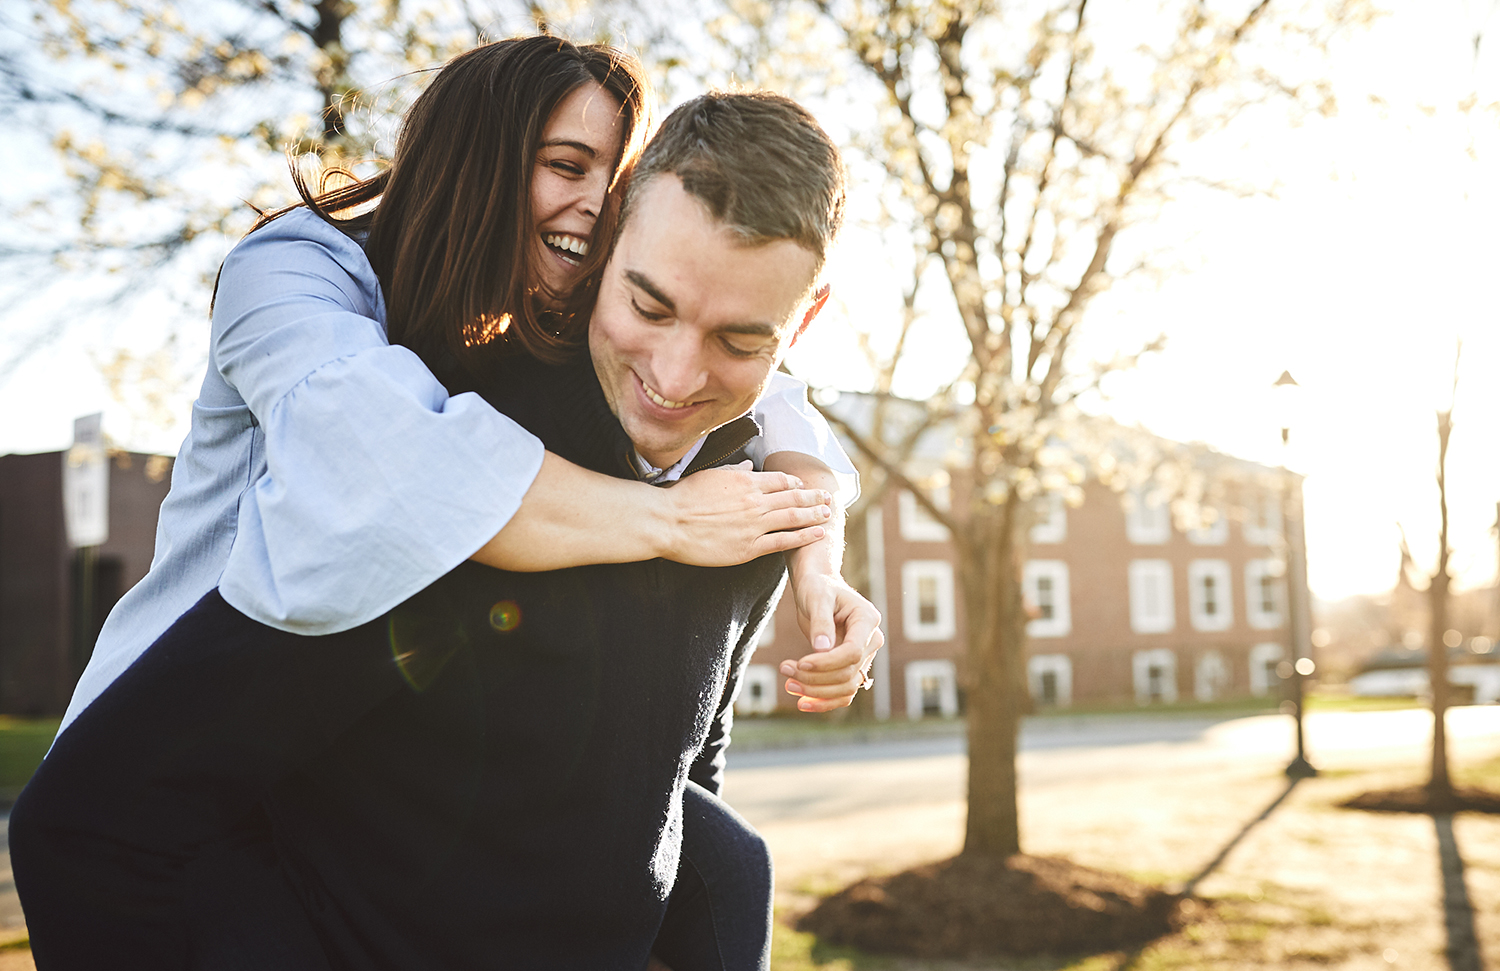 180422_StevensInstitureofTechnologyEngagementPhotography_HobokenEngagement Photography_By_BriJohnsonWeddings_0029.jpg